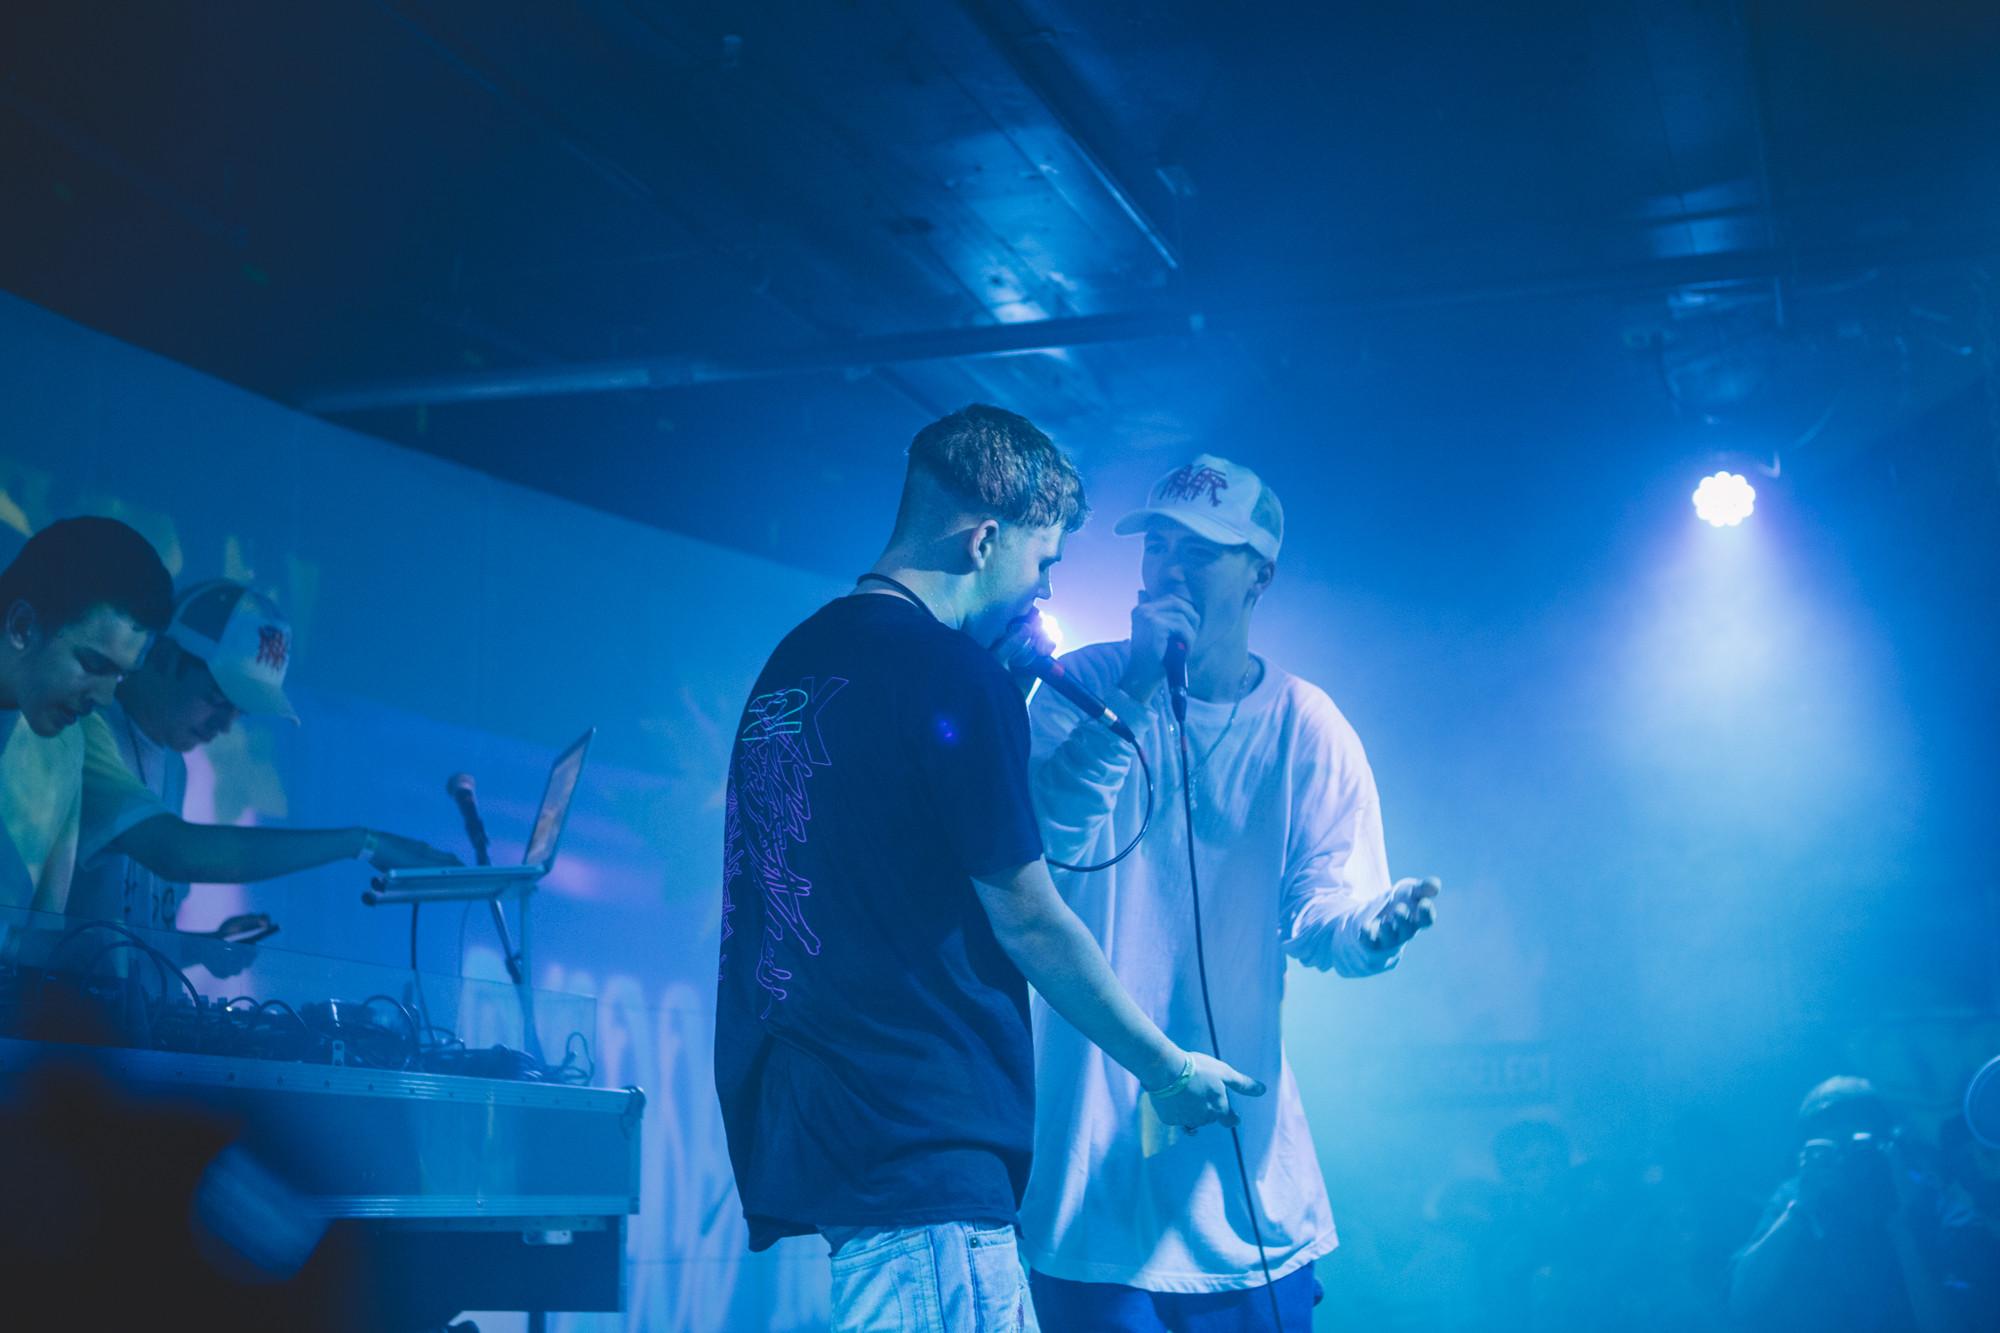 yung lean wallpaper,performance,entertainment,performing arts,concert,stage